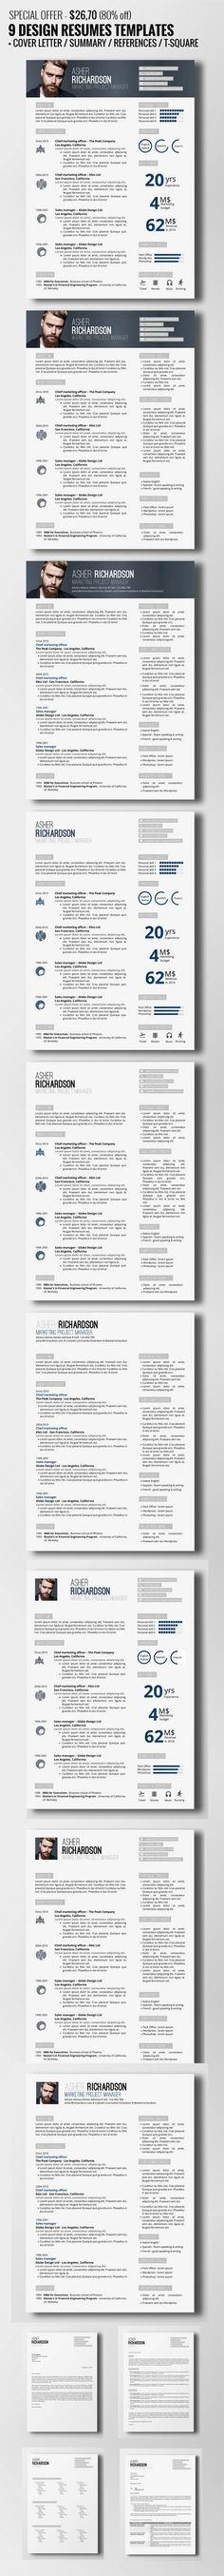 435 best Resume images on Pinterest Resume design, Design resume - successful resume templates